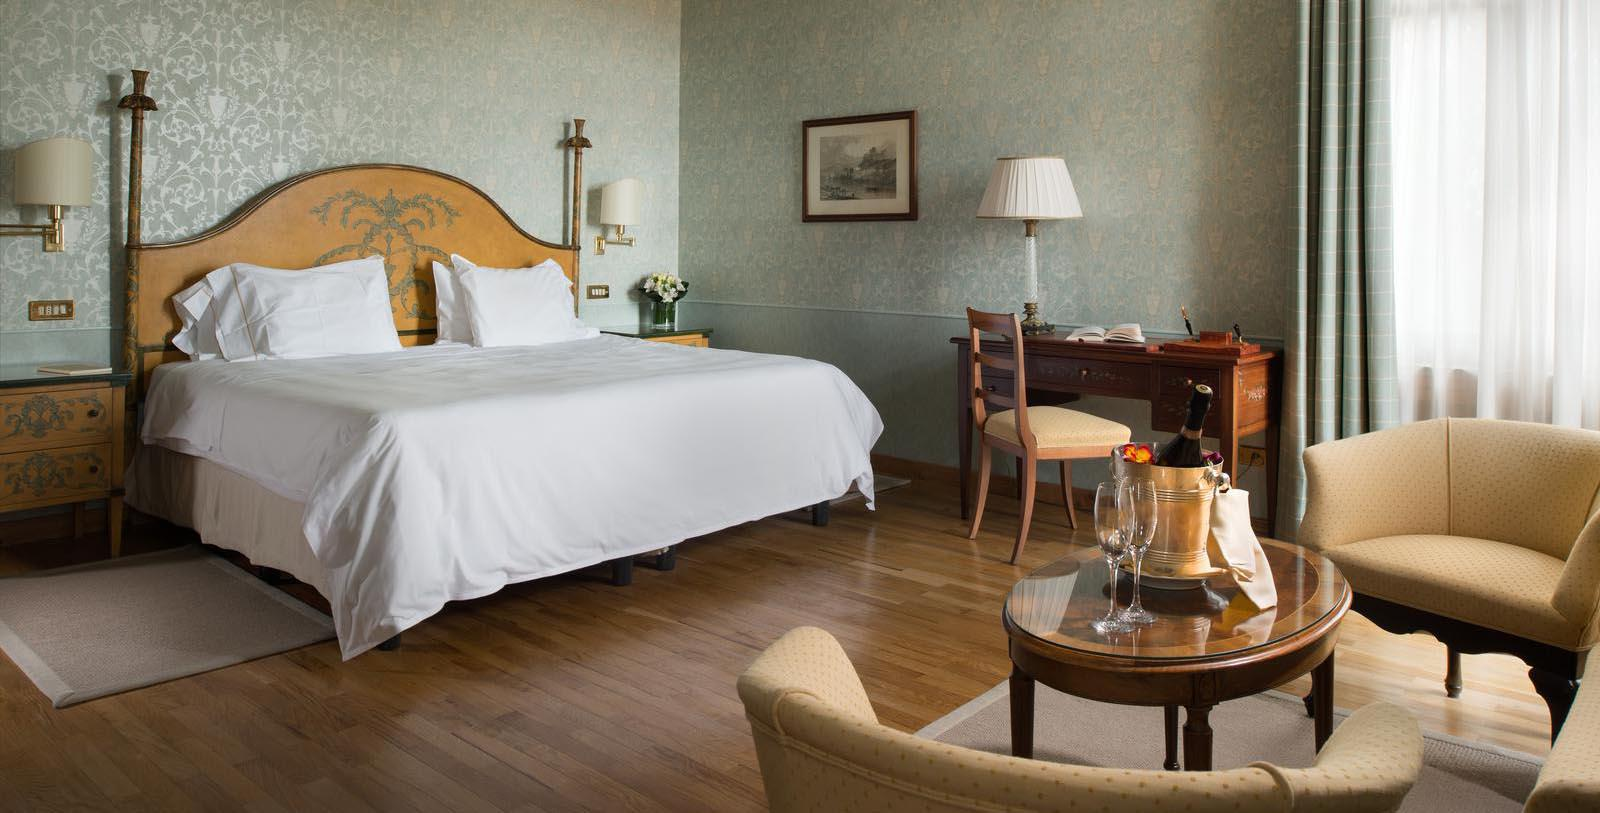 Image of Guestroom Interior Hotel Villa Cipriani, 1889, Member of Historic Hotels Worldwide, in Asolo, Italy, Location